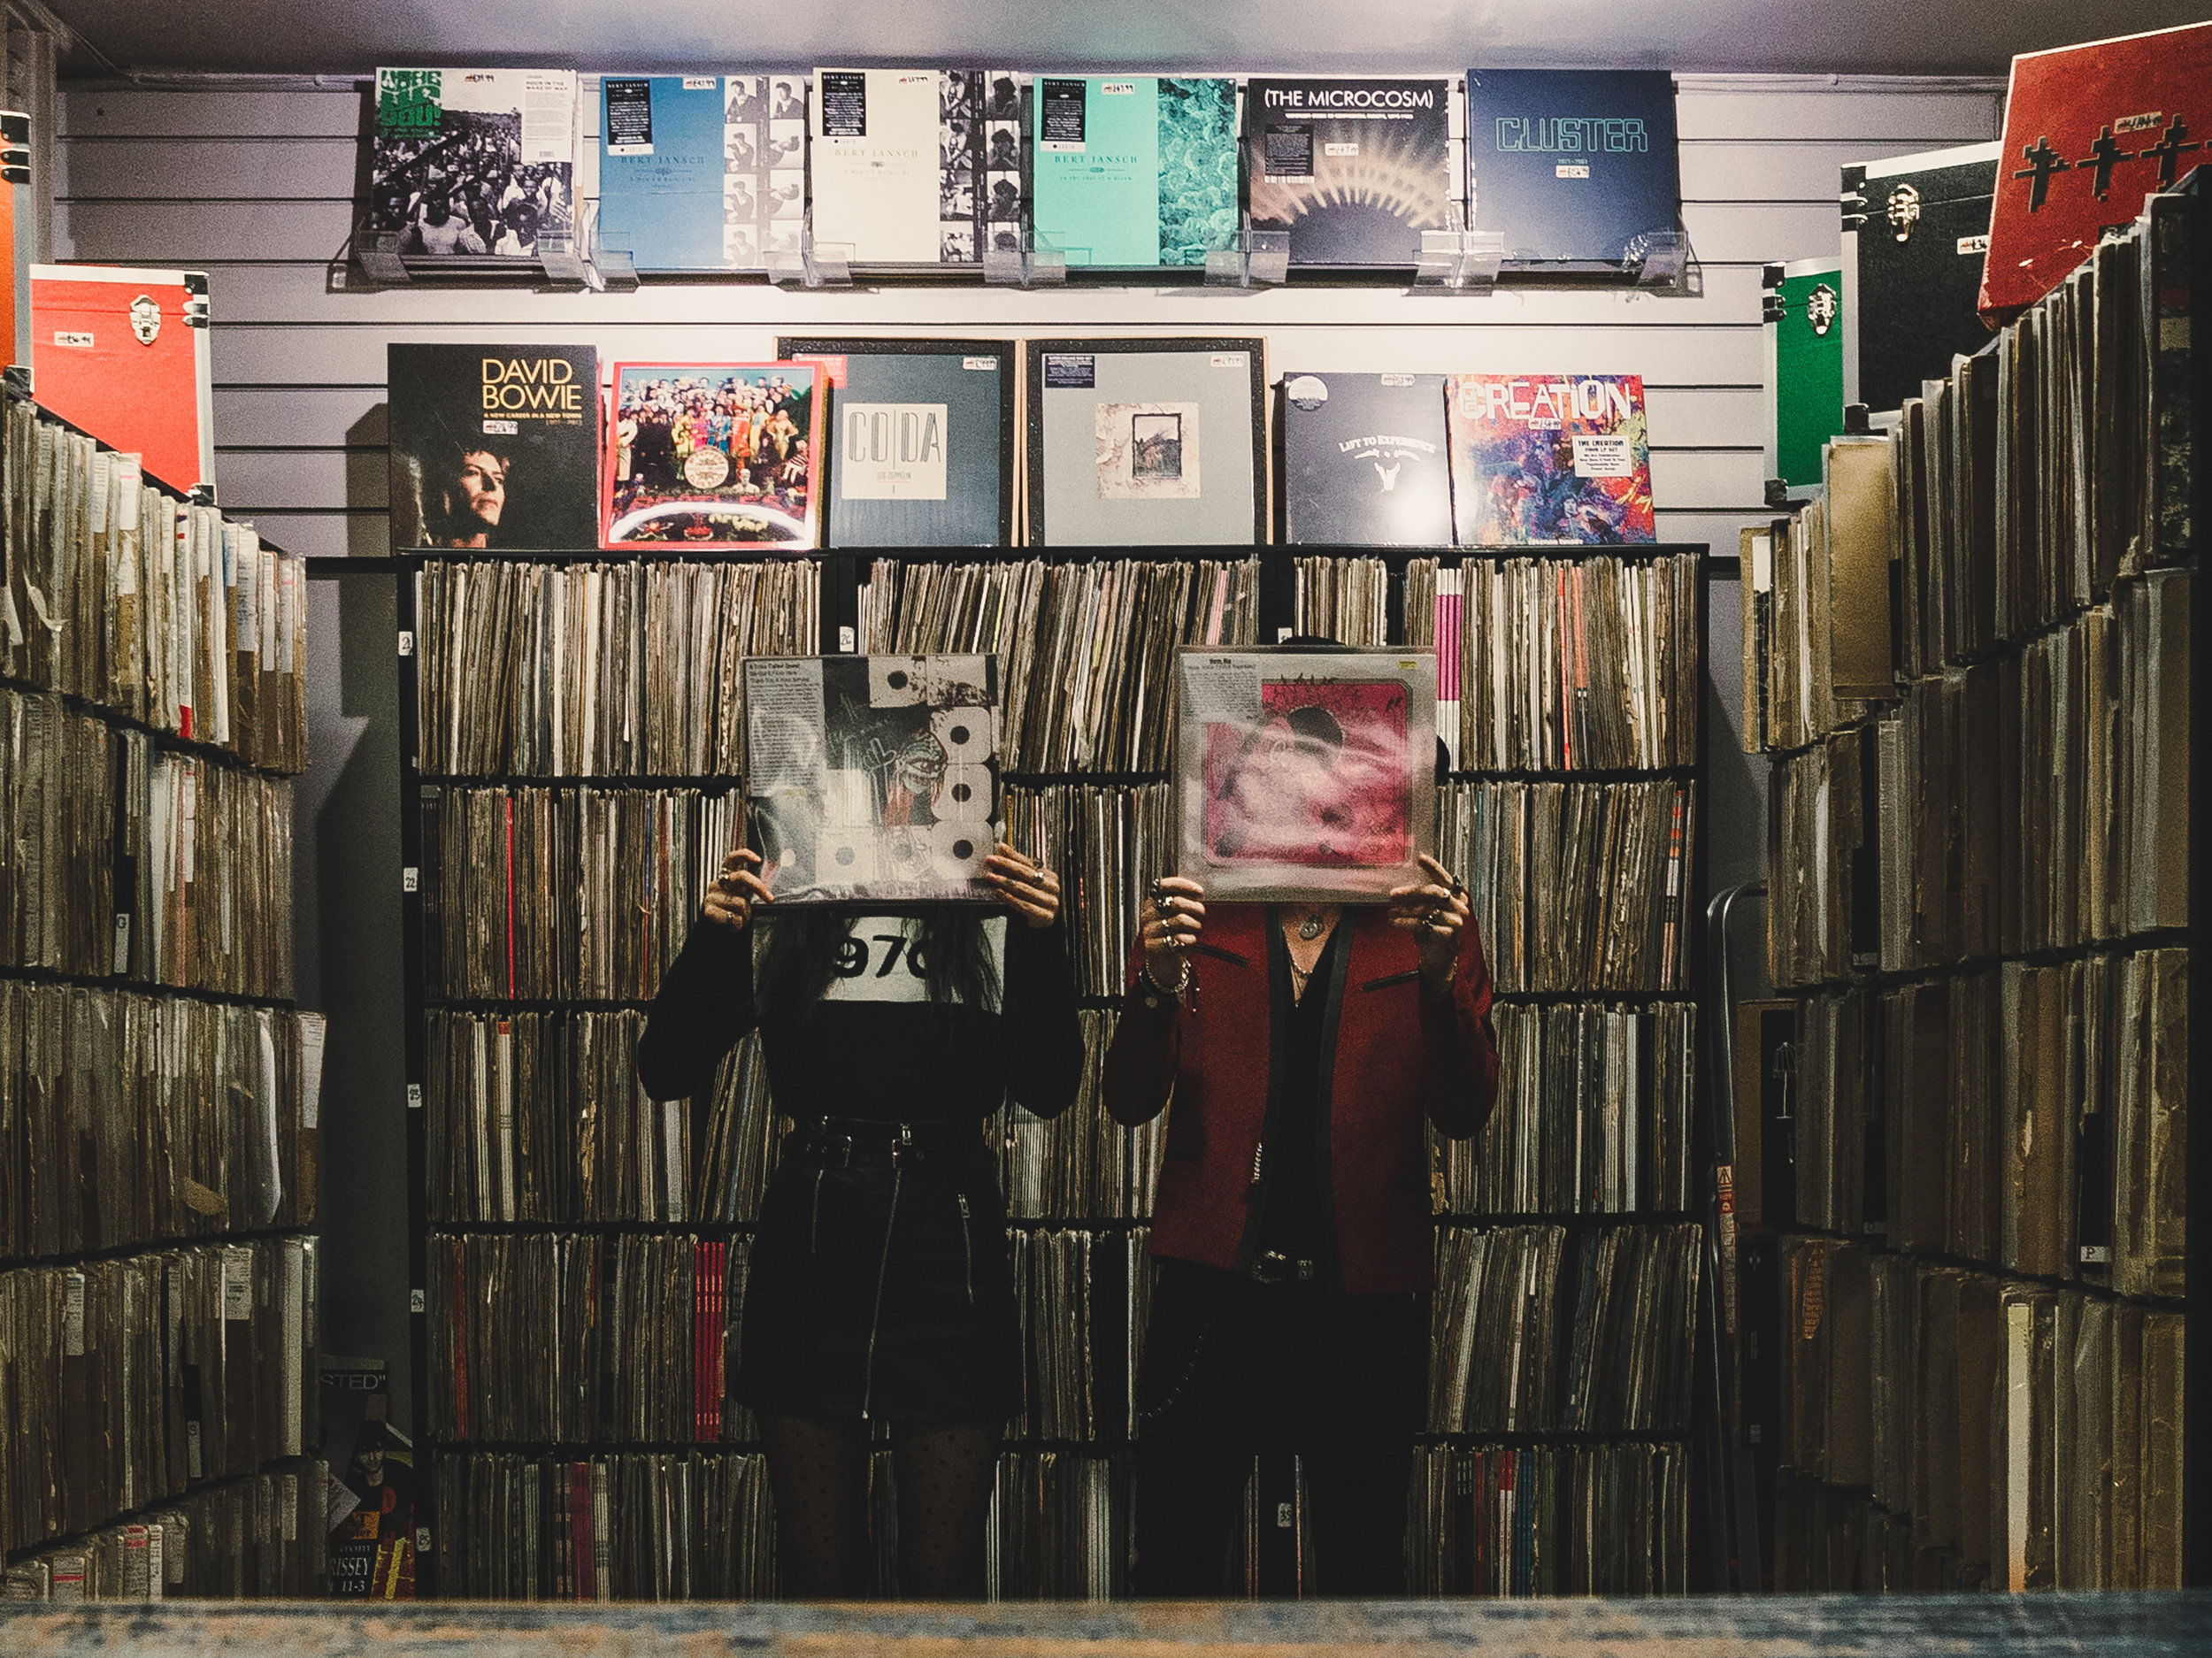 rock fashion bloggers pre-wedding shoot in a record shop in manchester